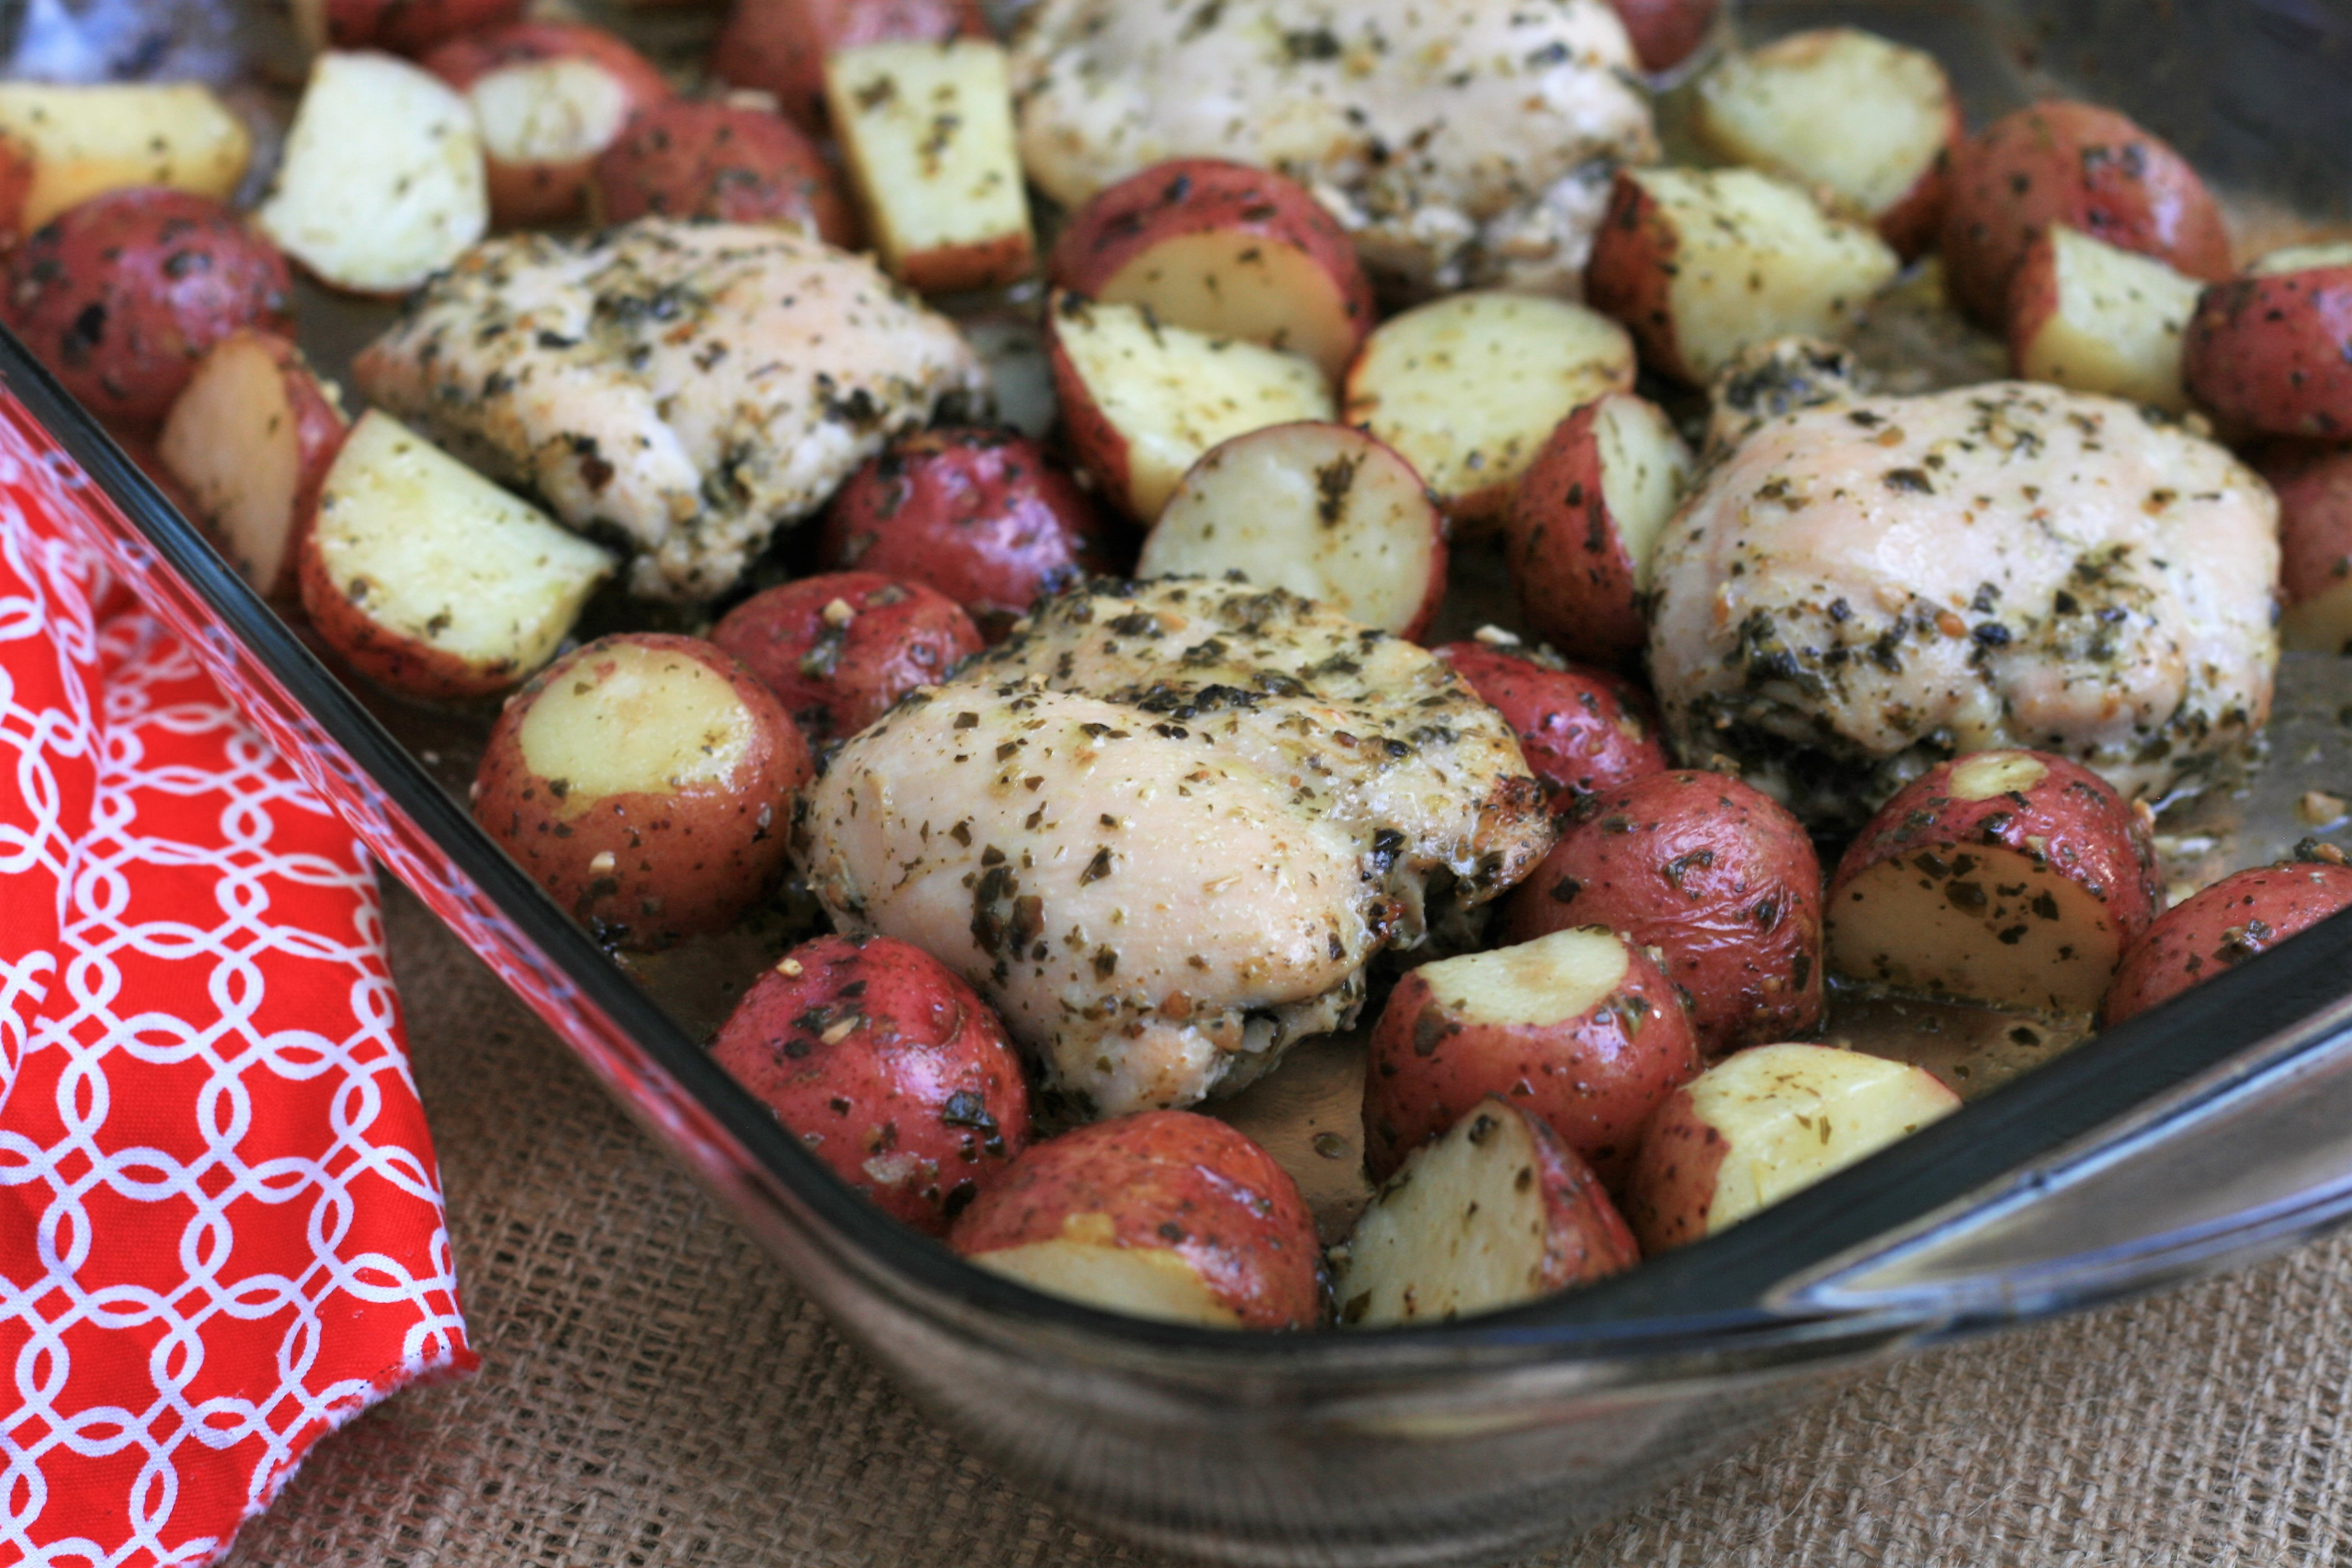 """""""Prepared pesto is all you need to turn plain chicken and potatoes into a flavorful dinner,"""" says France C. """"Serve with a side salad for a complete meal."""""""